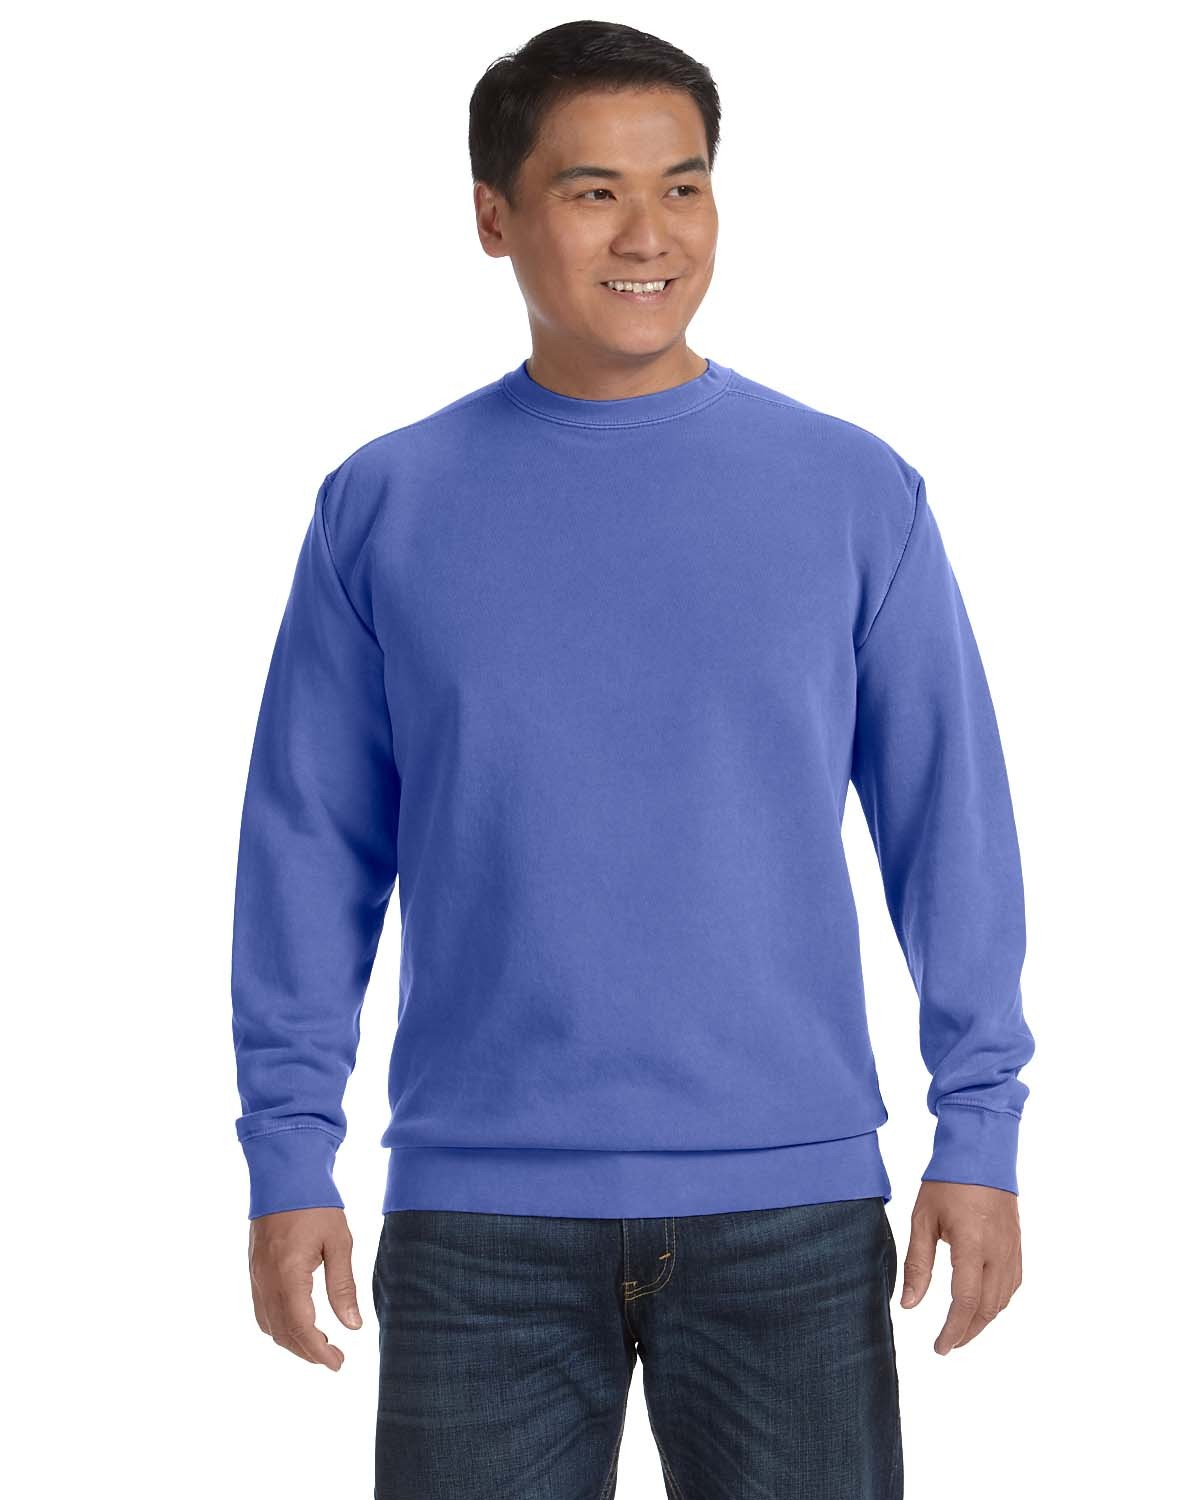 1566 Comfort Colors PERIWINKLE